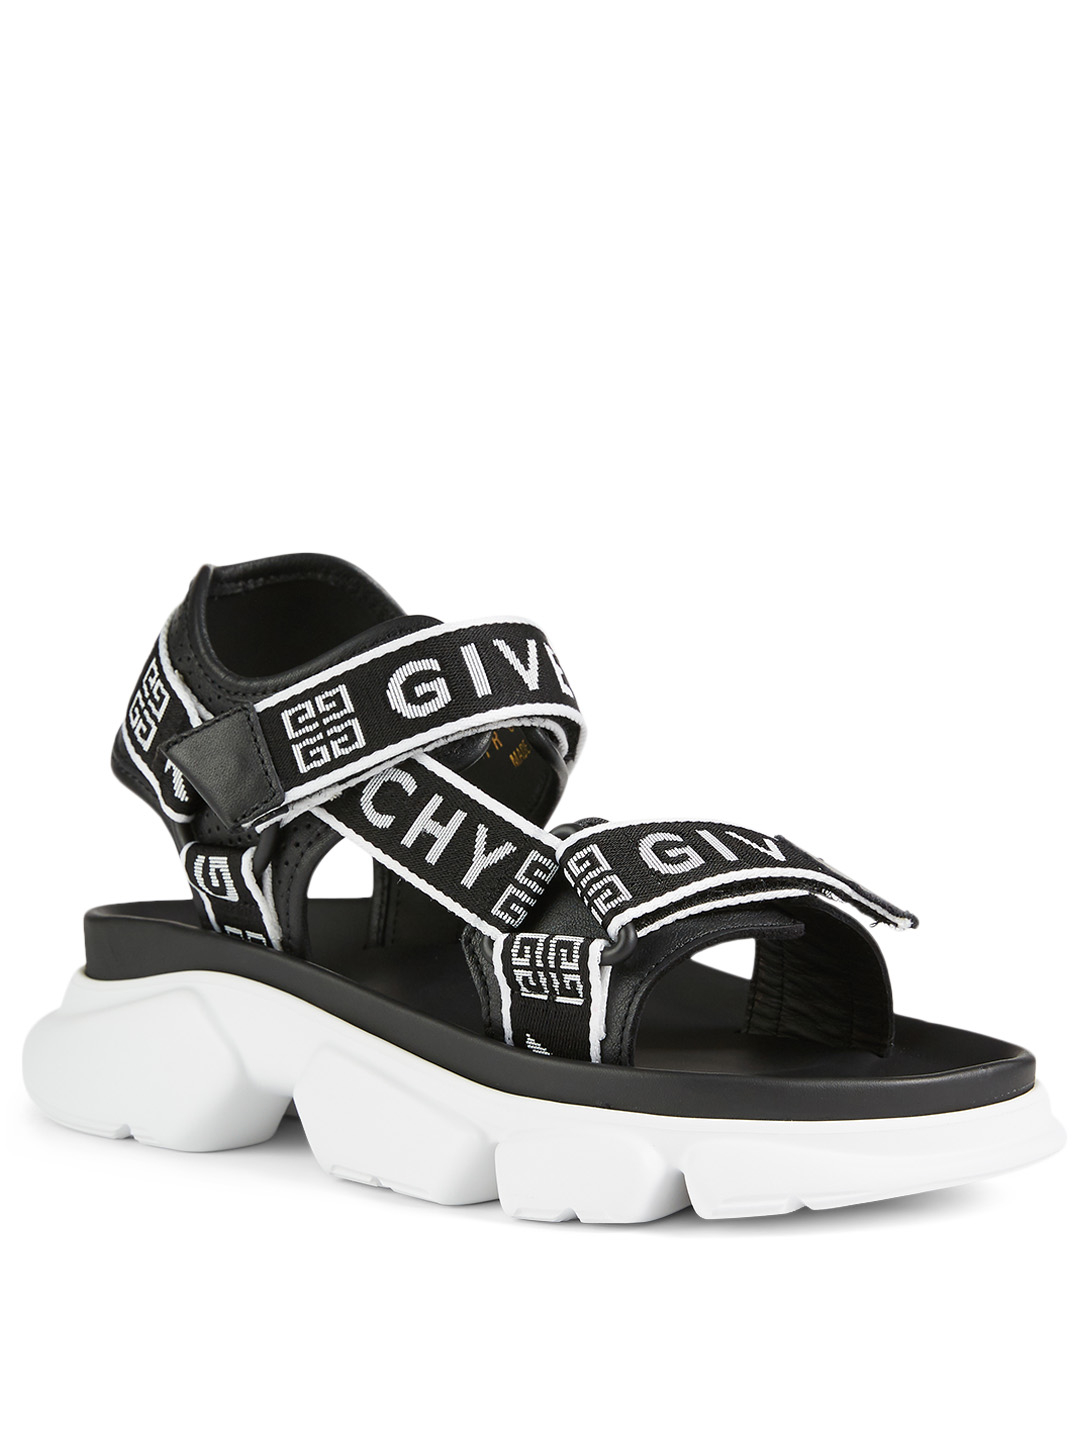 GIVENCHY Jaw Leather Sandals With 4G Webbing Women's Black